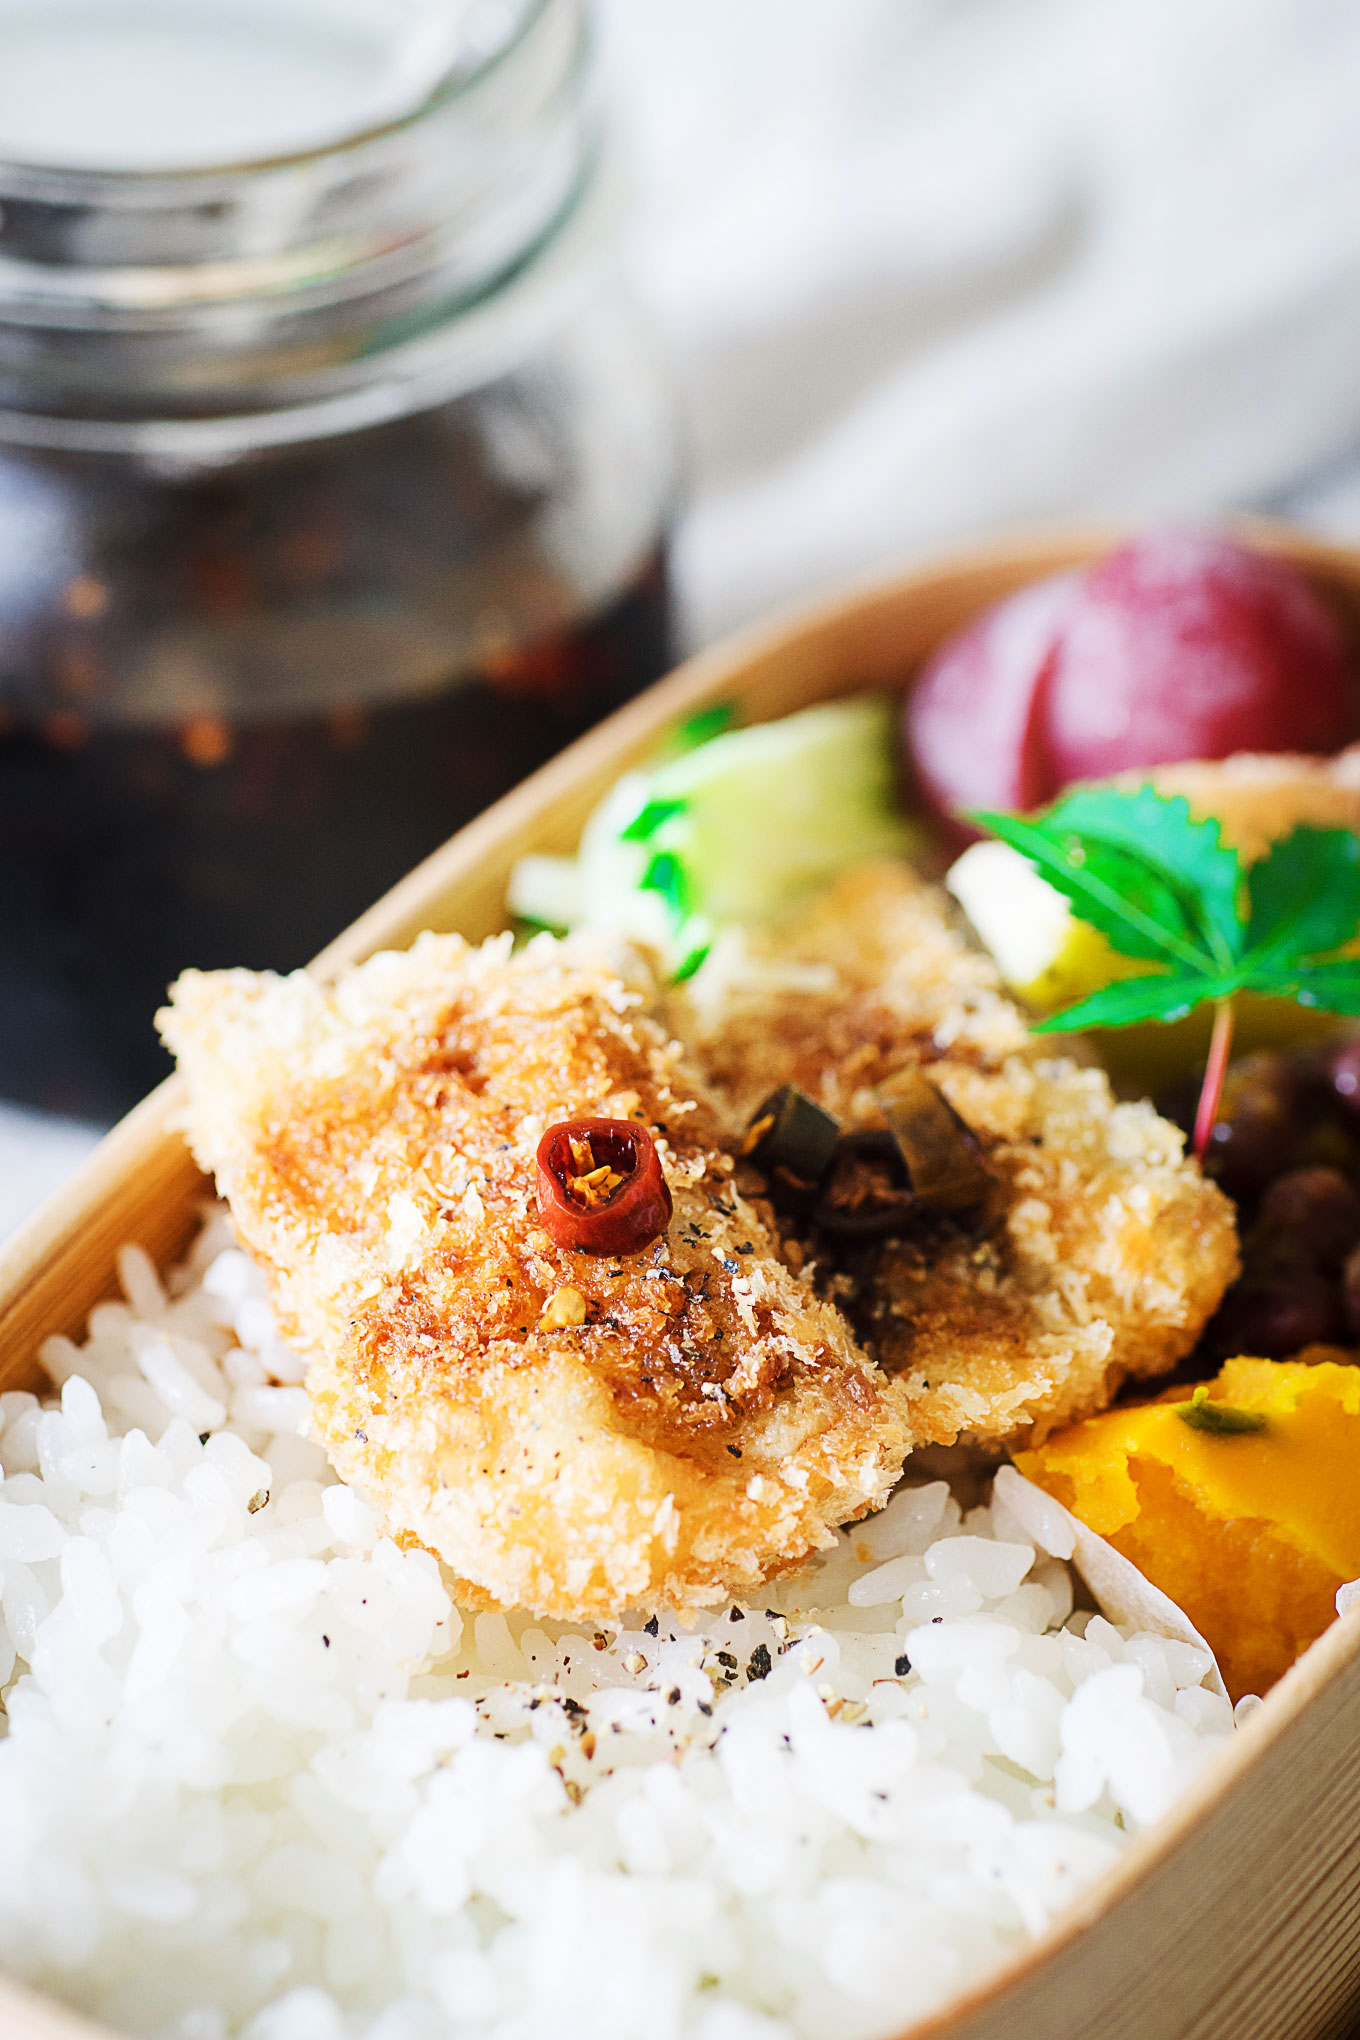 fried-cutlass-fish-magewappa-bento-3